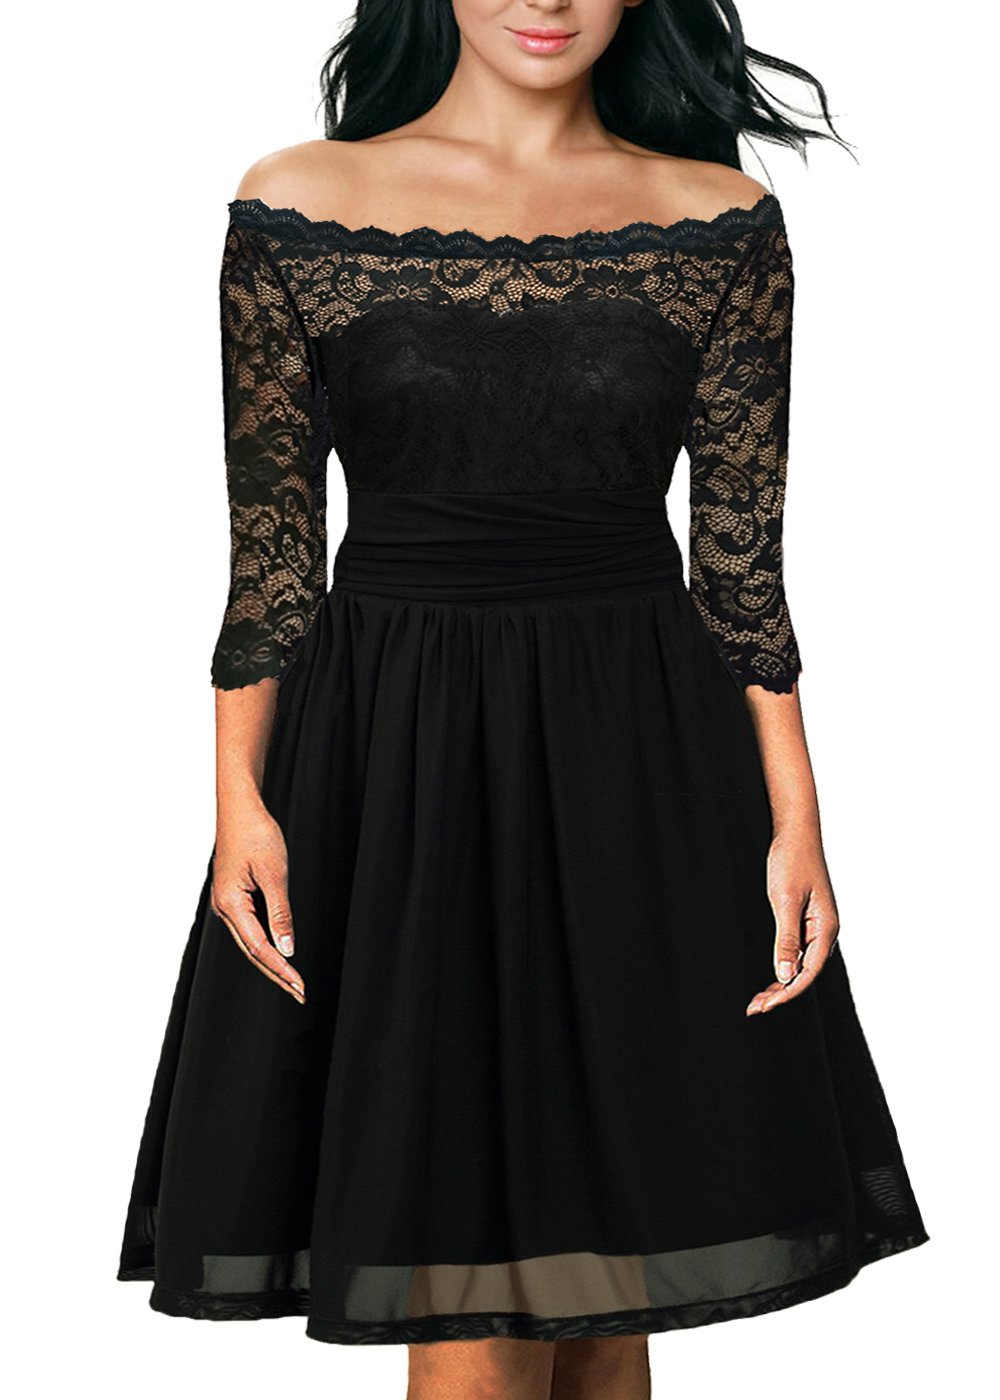 Dilanni Womens Vintage Floral Lace Long Sleeve Cocktail Party Tube Dress 0X-5X CAOCPD00323X